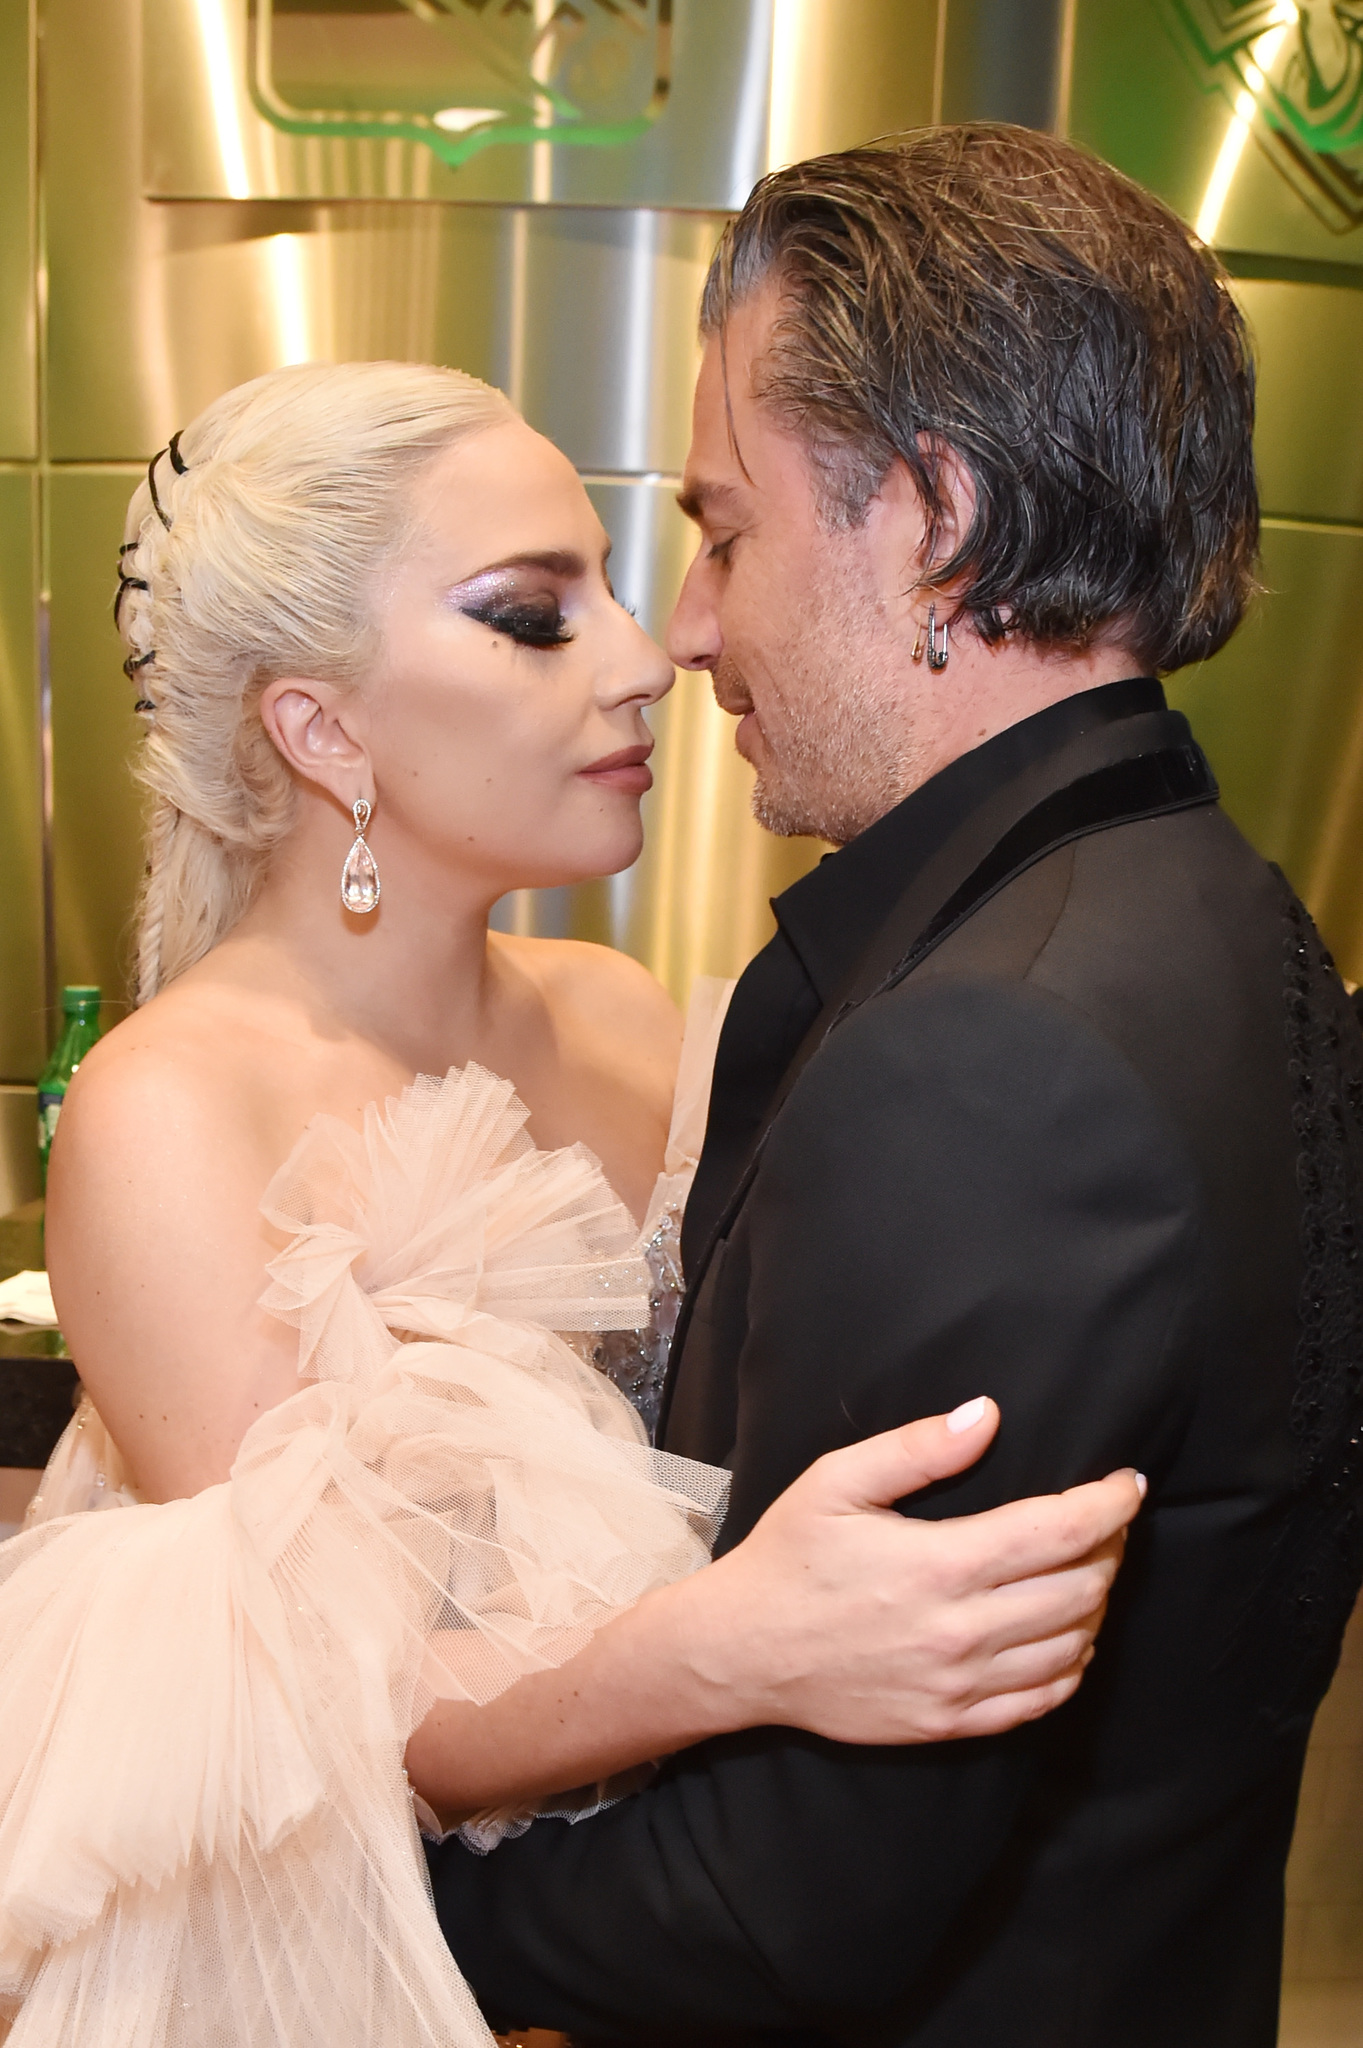 Who is lady gaga dating 2018